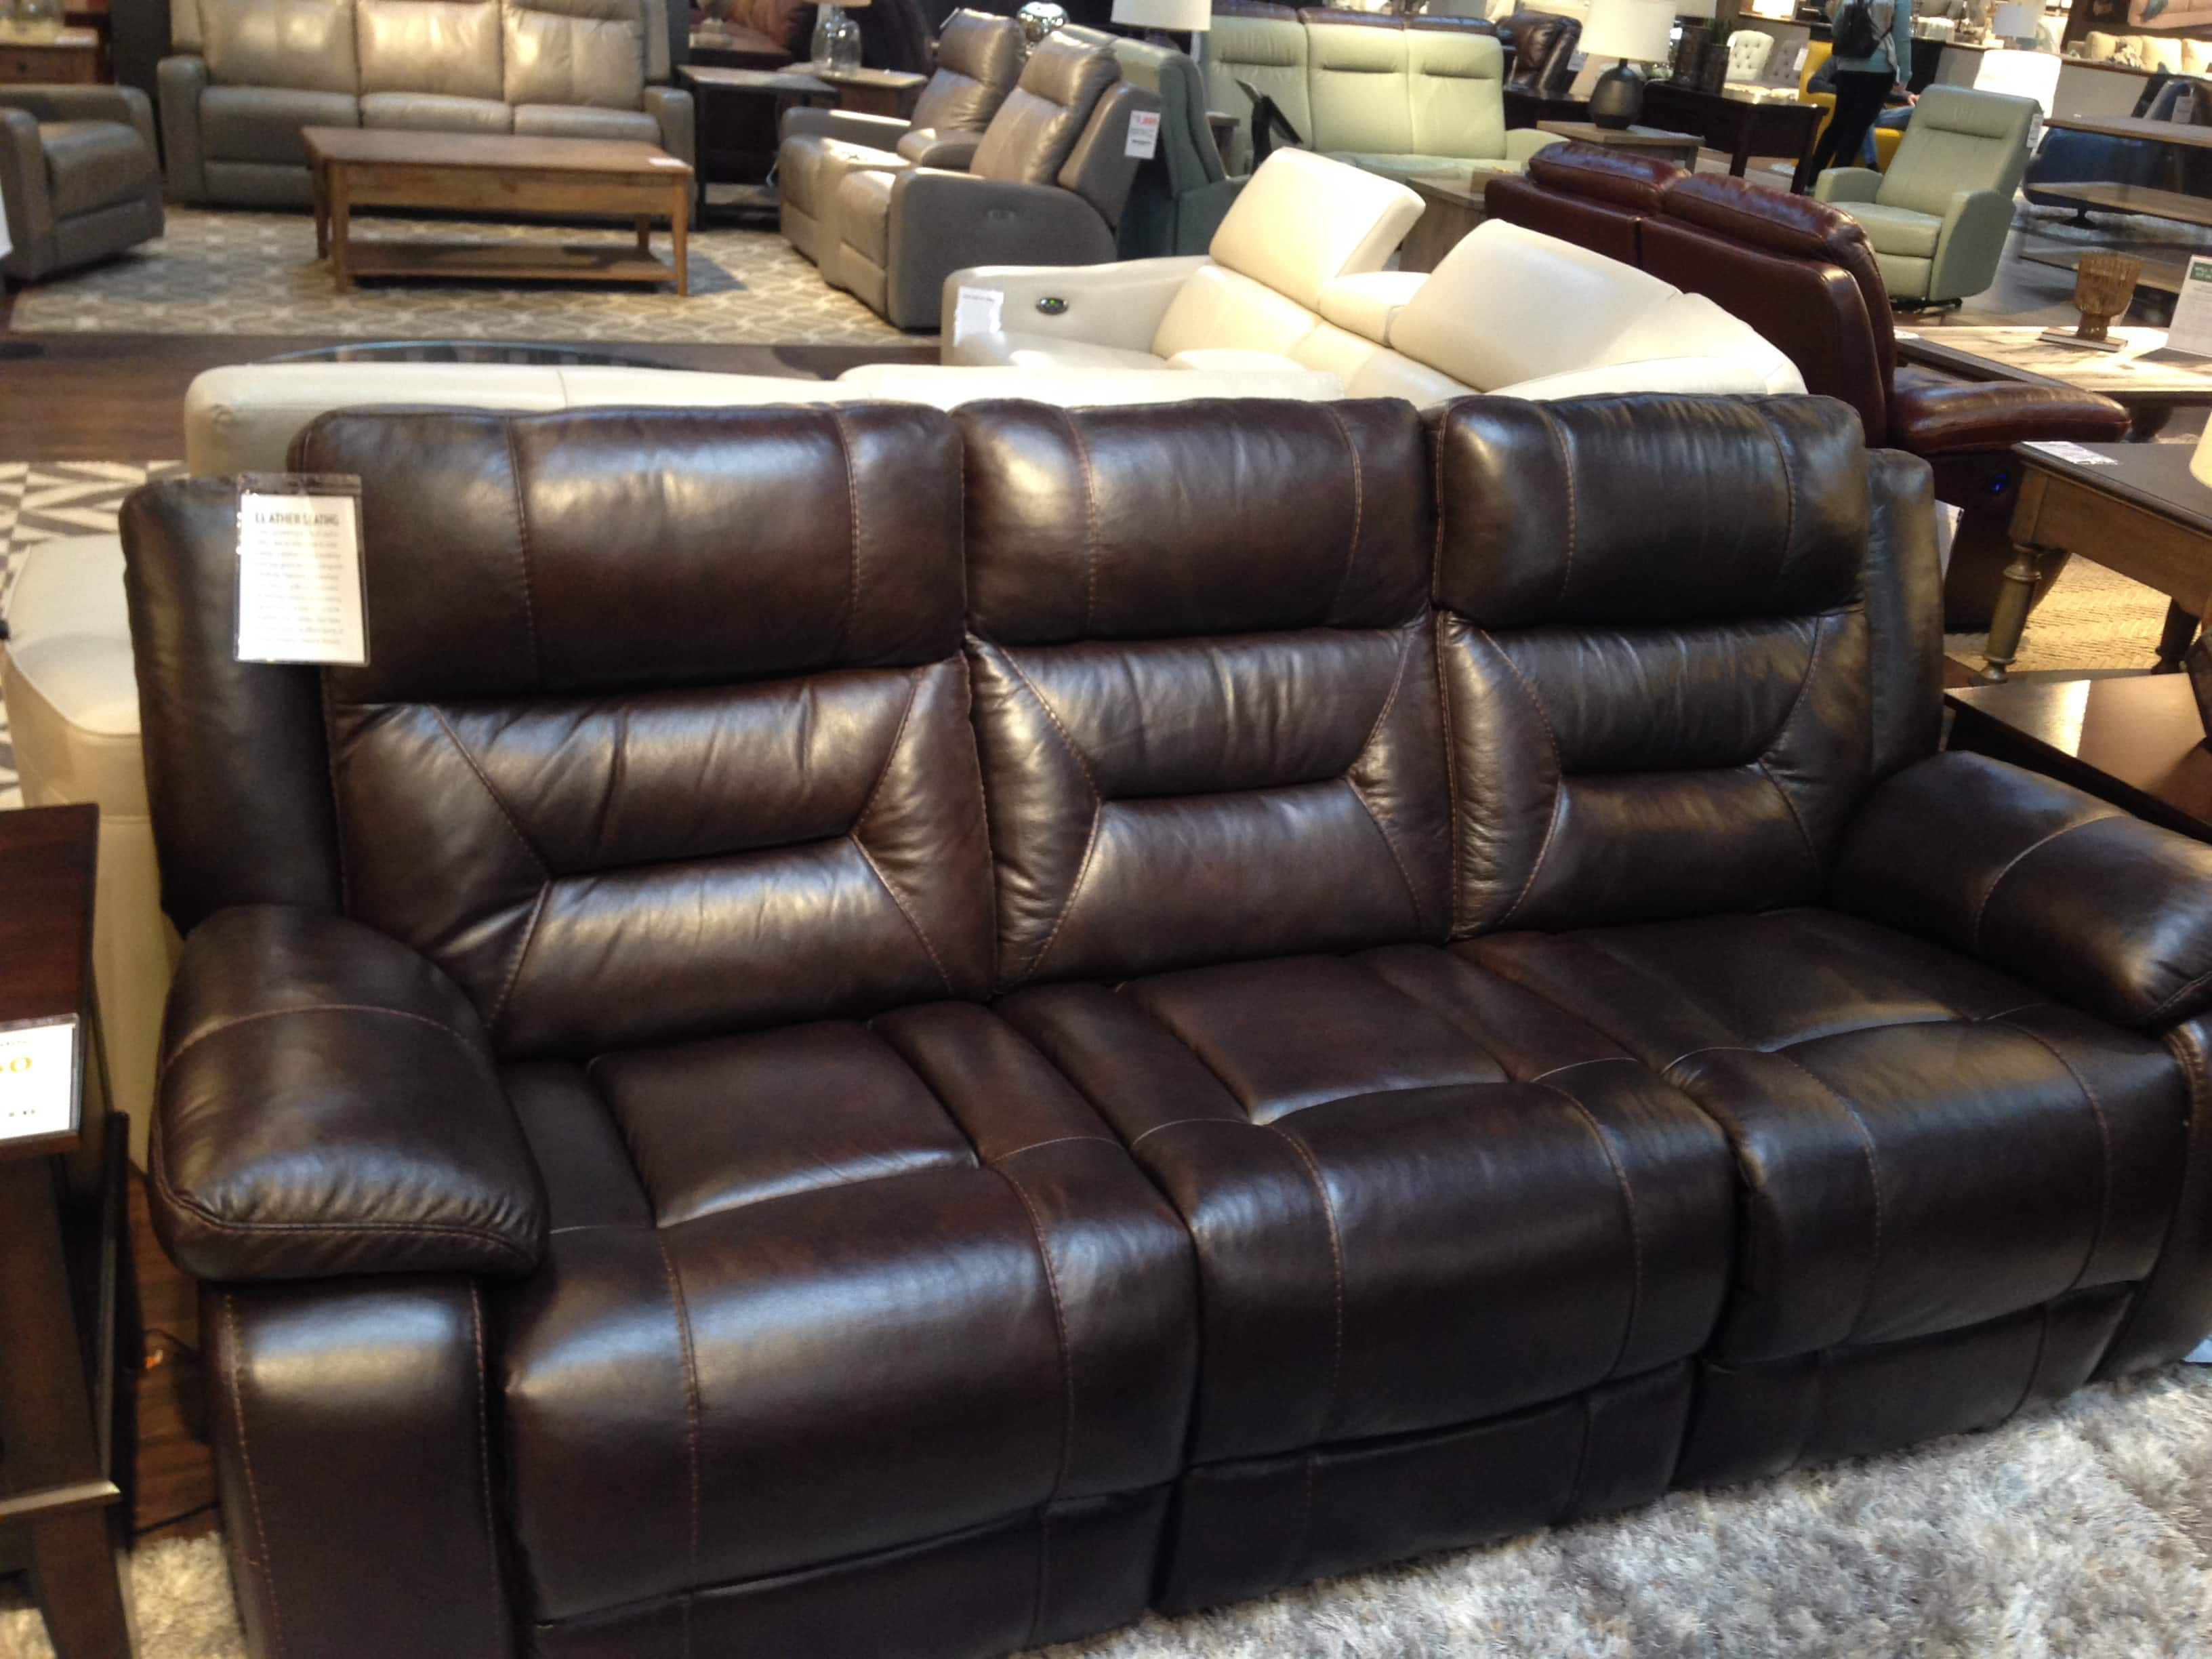 Costco Pulaski Leather Sofa And Love Seat For $1500 Plus Tax